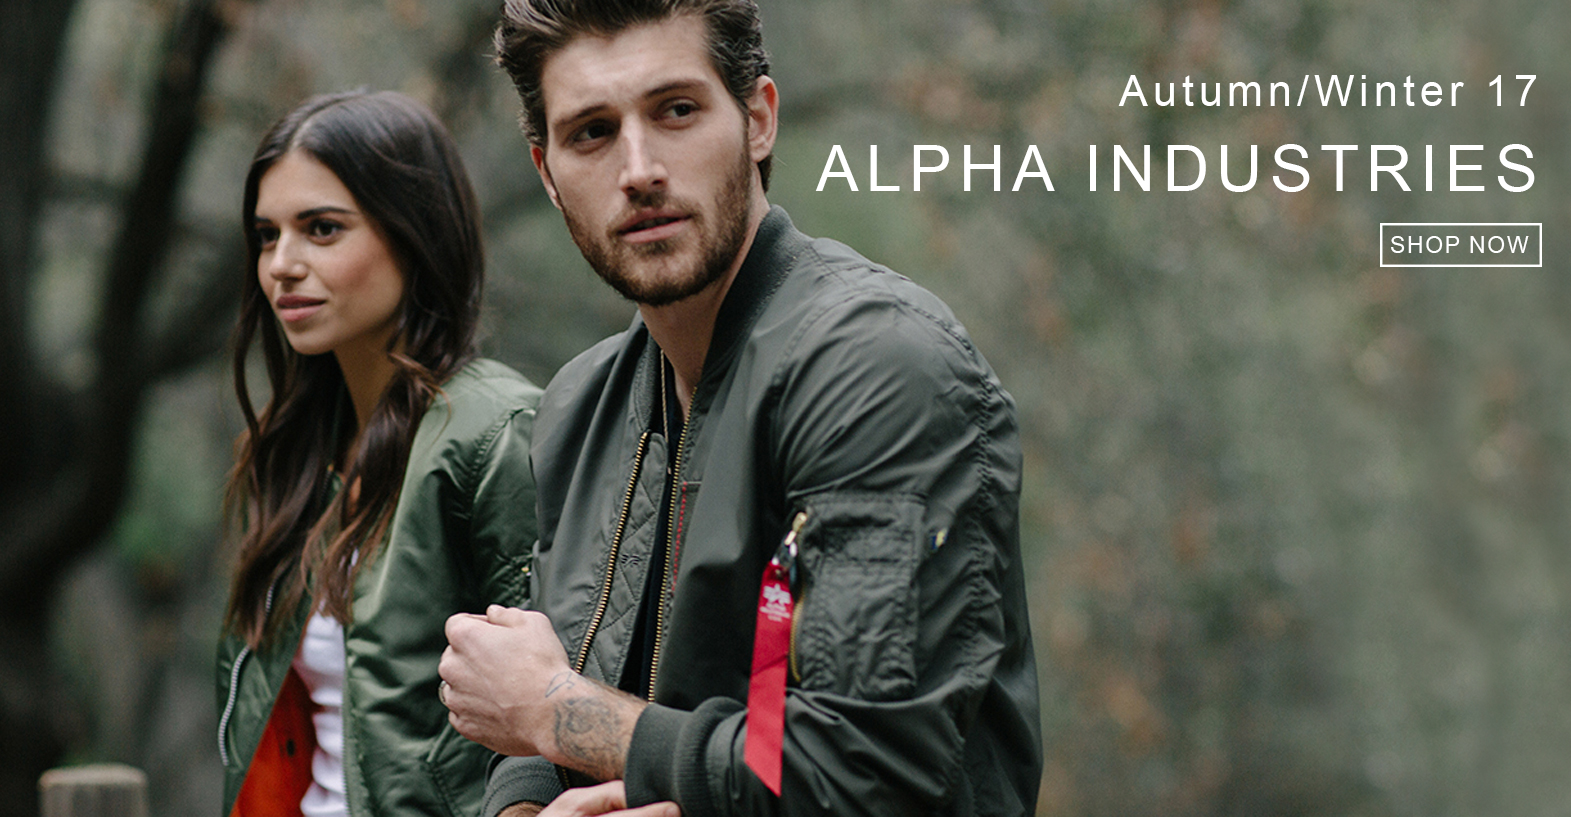 ALPHA INDUSTRIES AW17